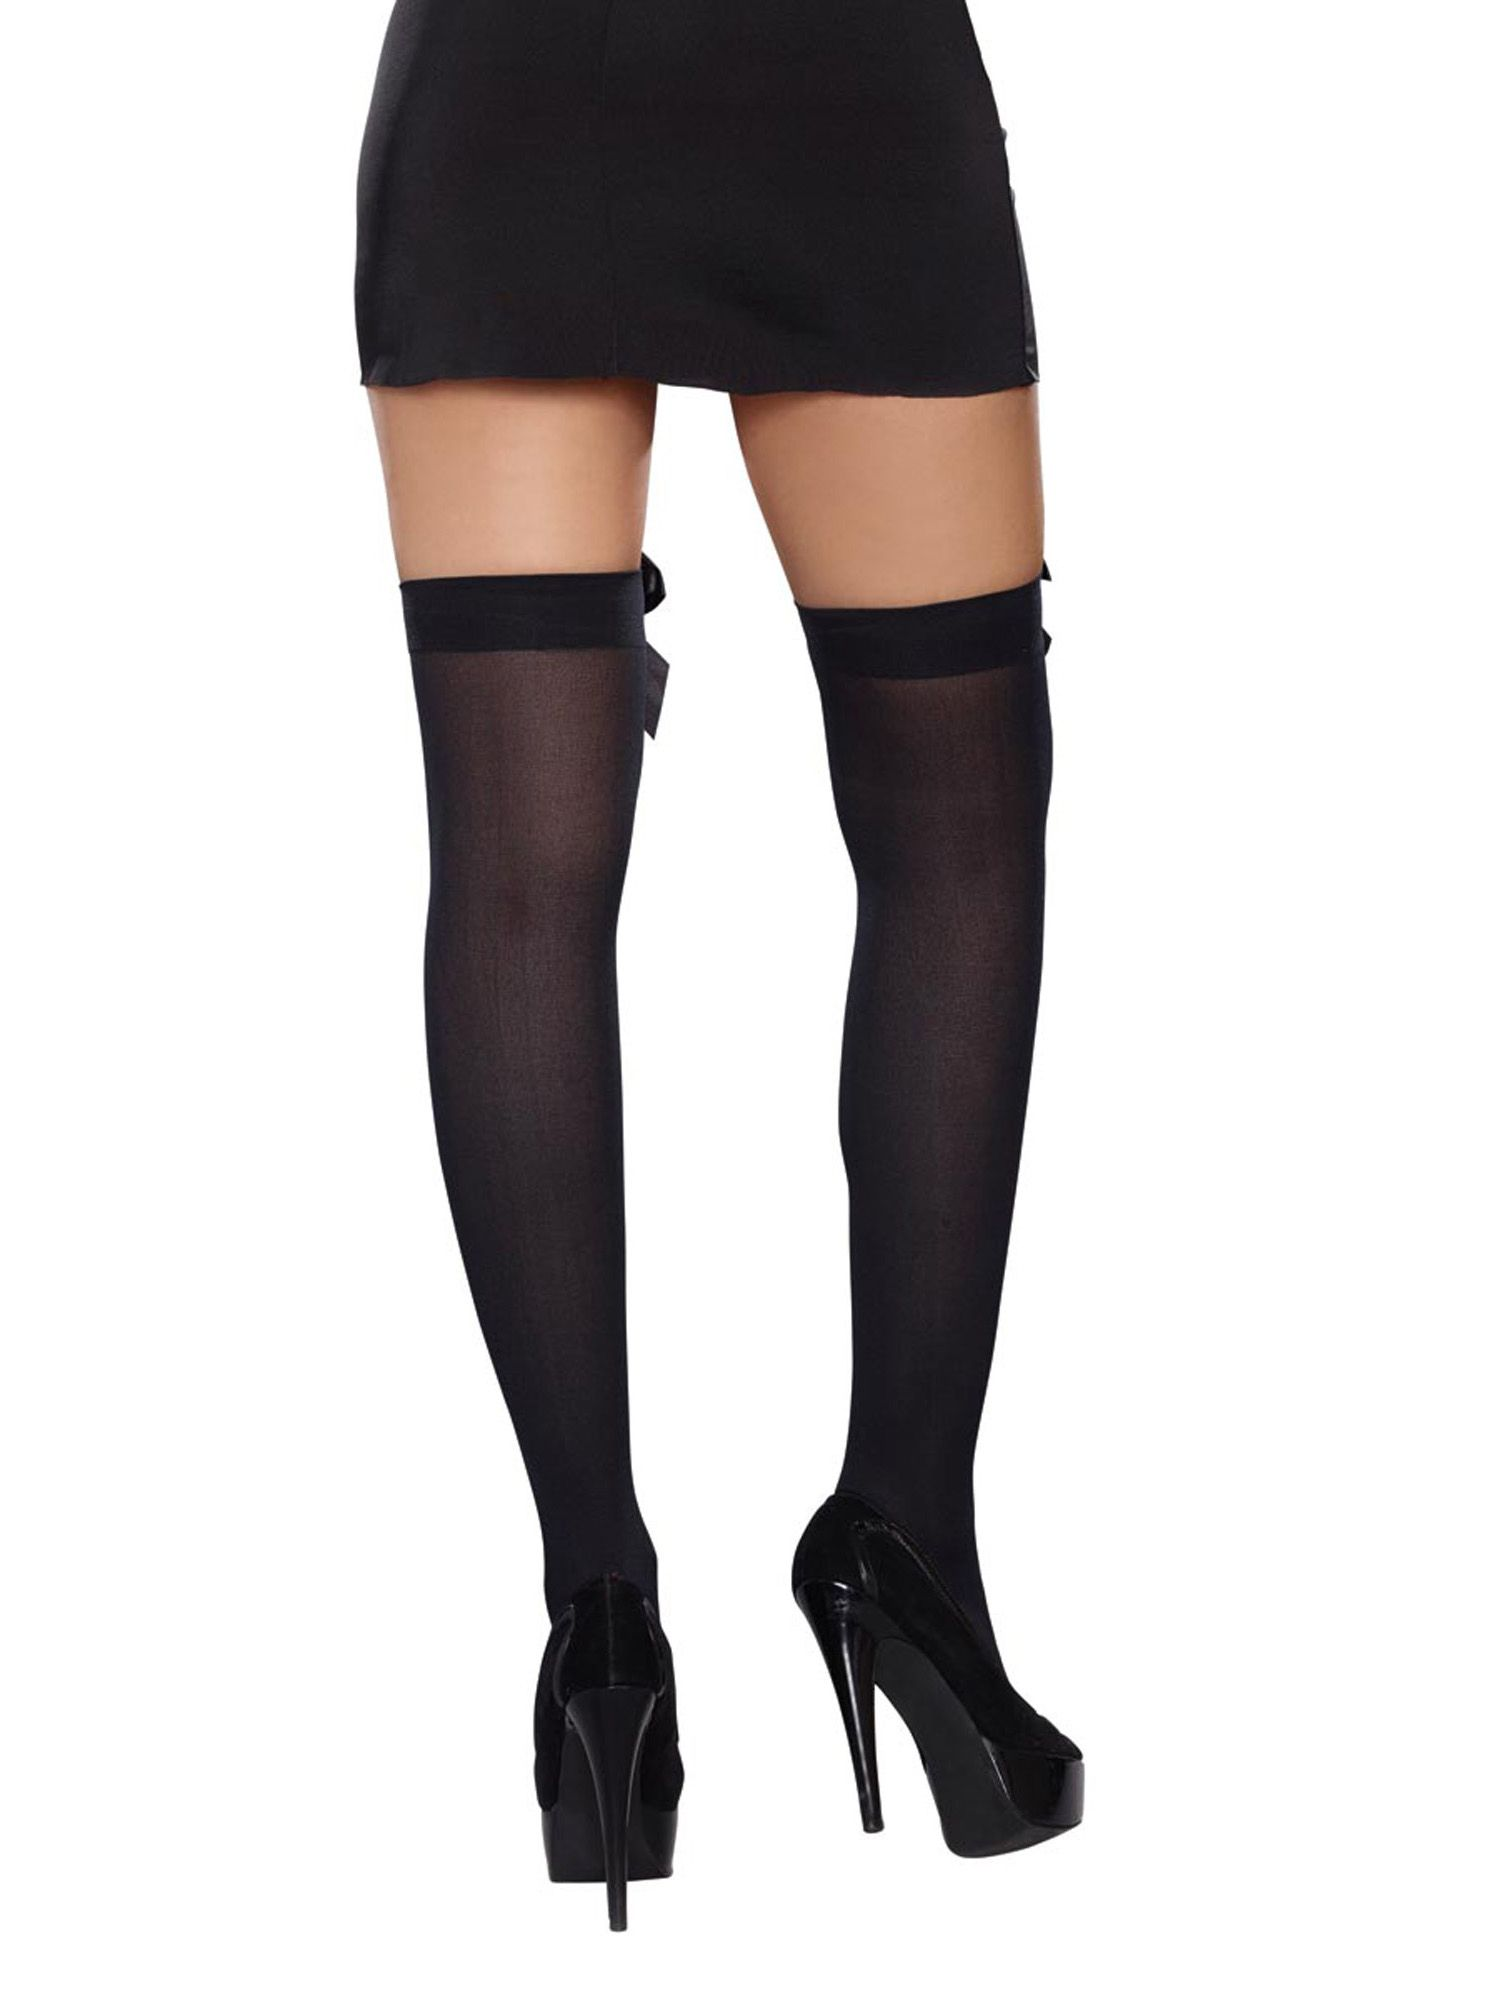 d1b4caa8593 Womens Plus Size Satin Bow Opaque Thigh High Stockings With Bow Hosiery  Satin Bow Womens